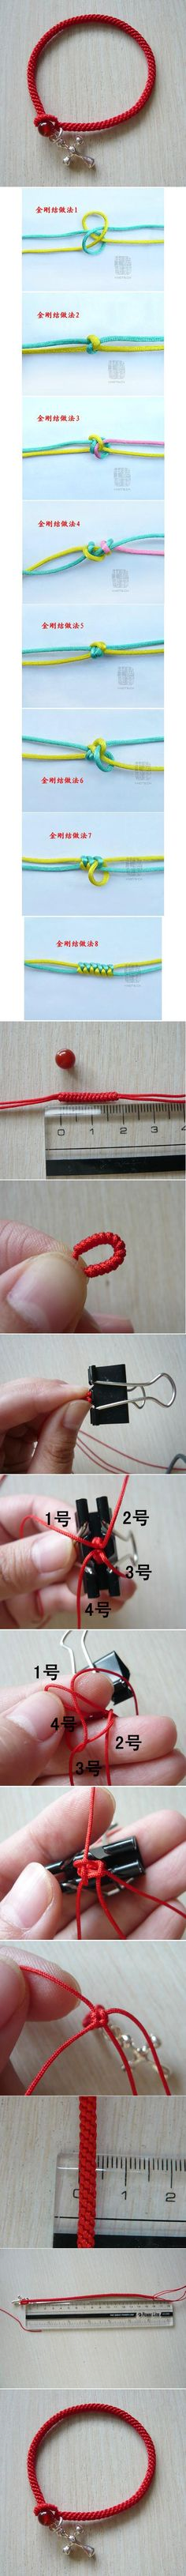 DIY Easy Chinese Knot Bracelet DIY Easy Chinese Knot Bracelet